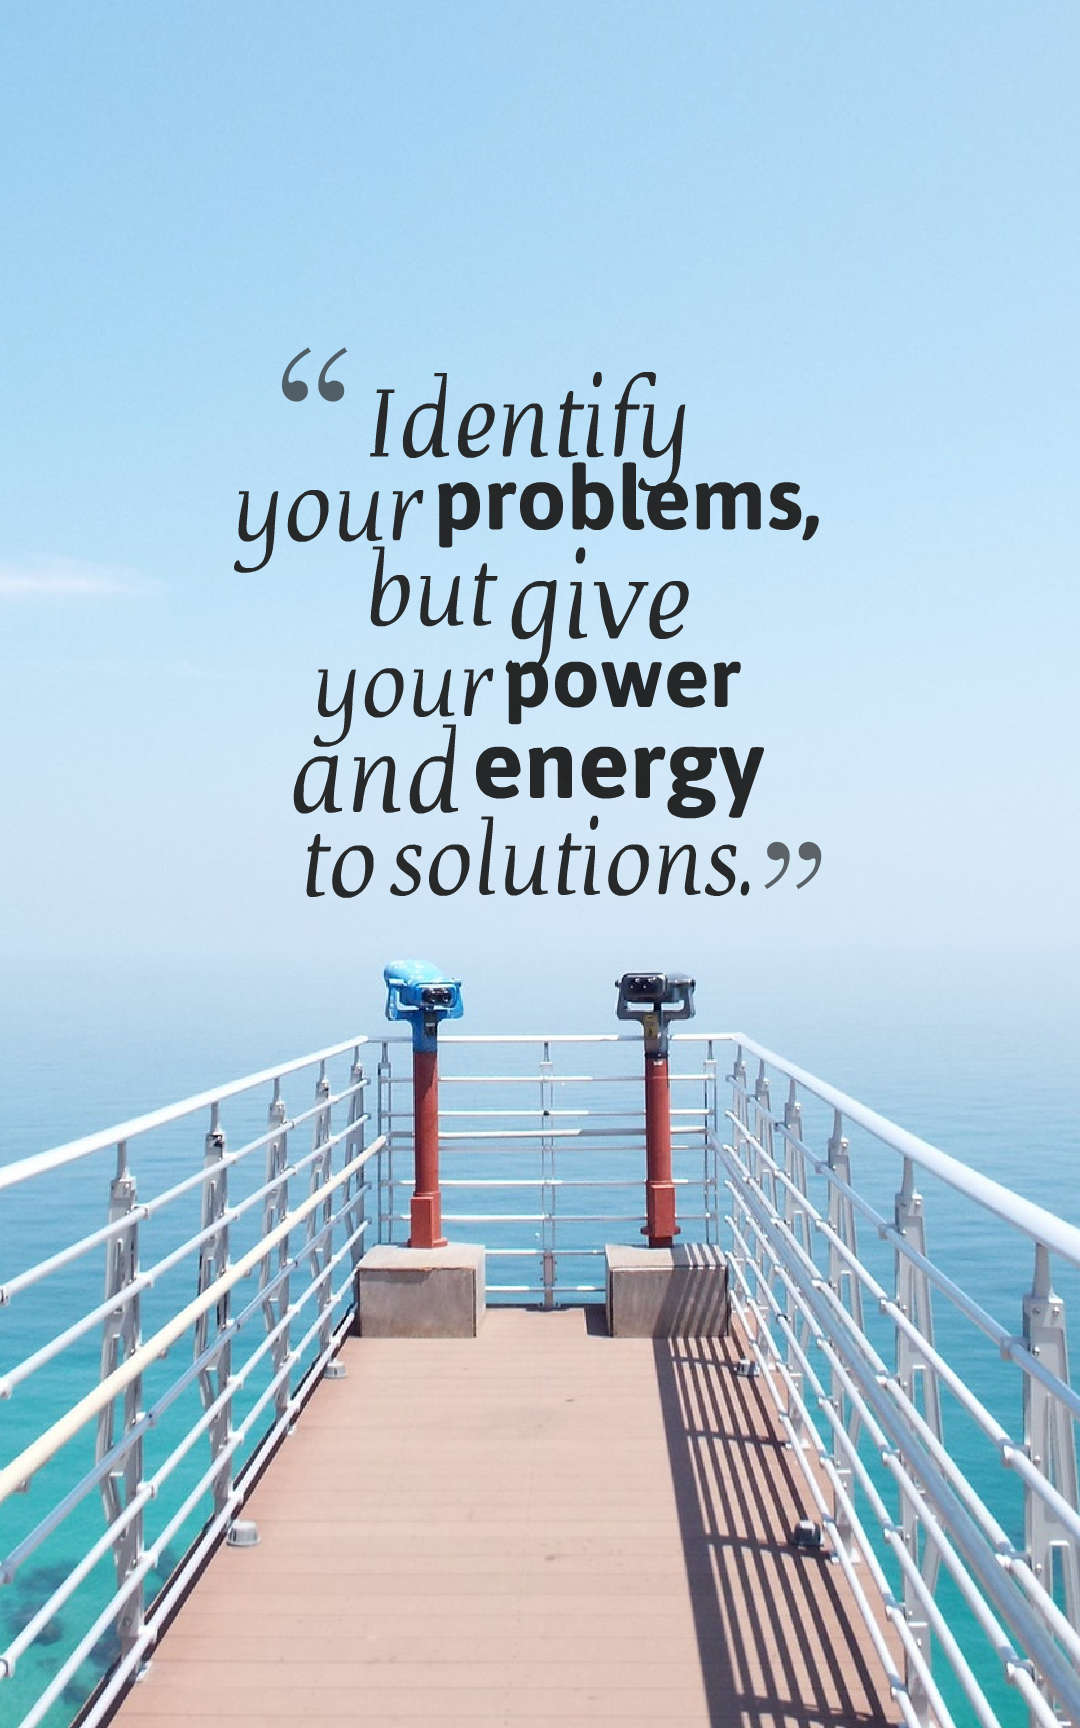 Quotes image of Identify your problems, but give your power and energy to solutions.